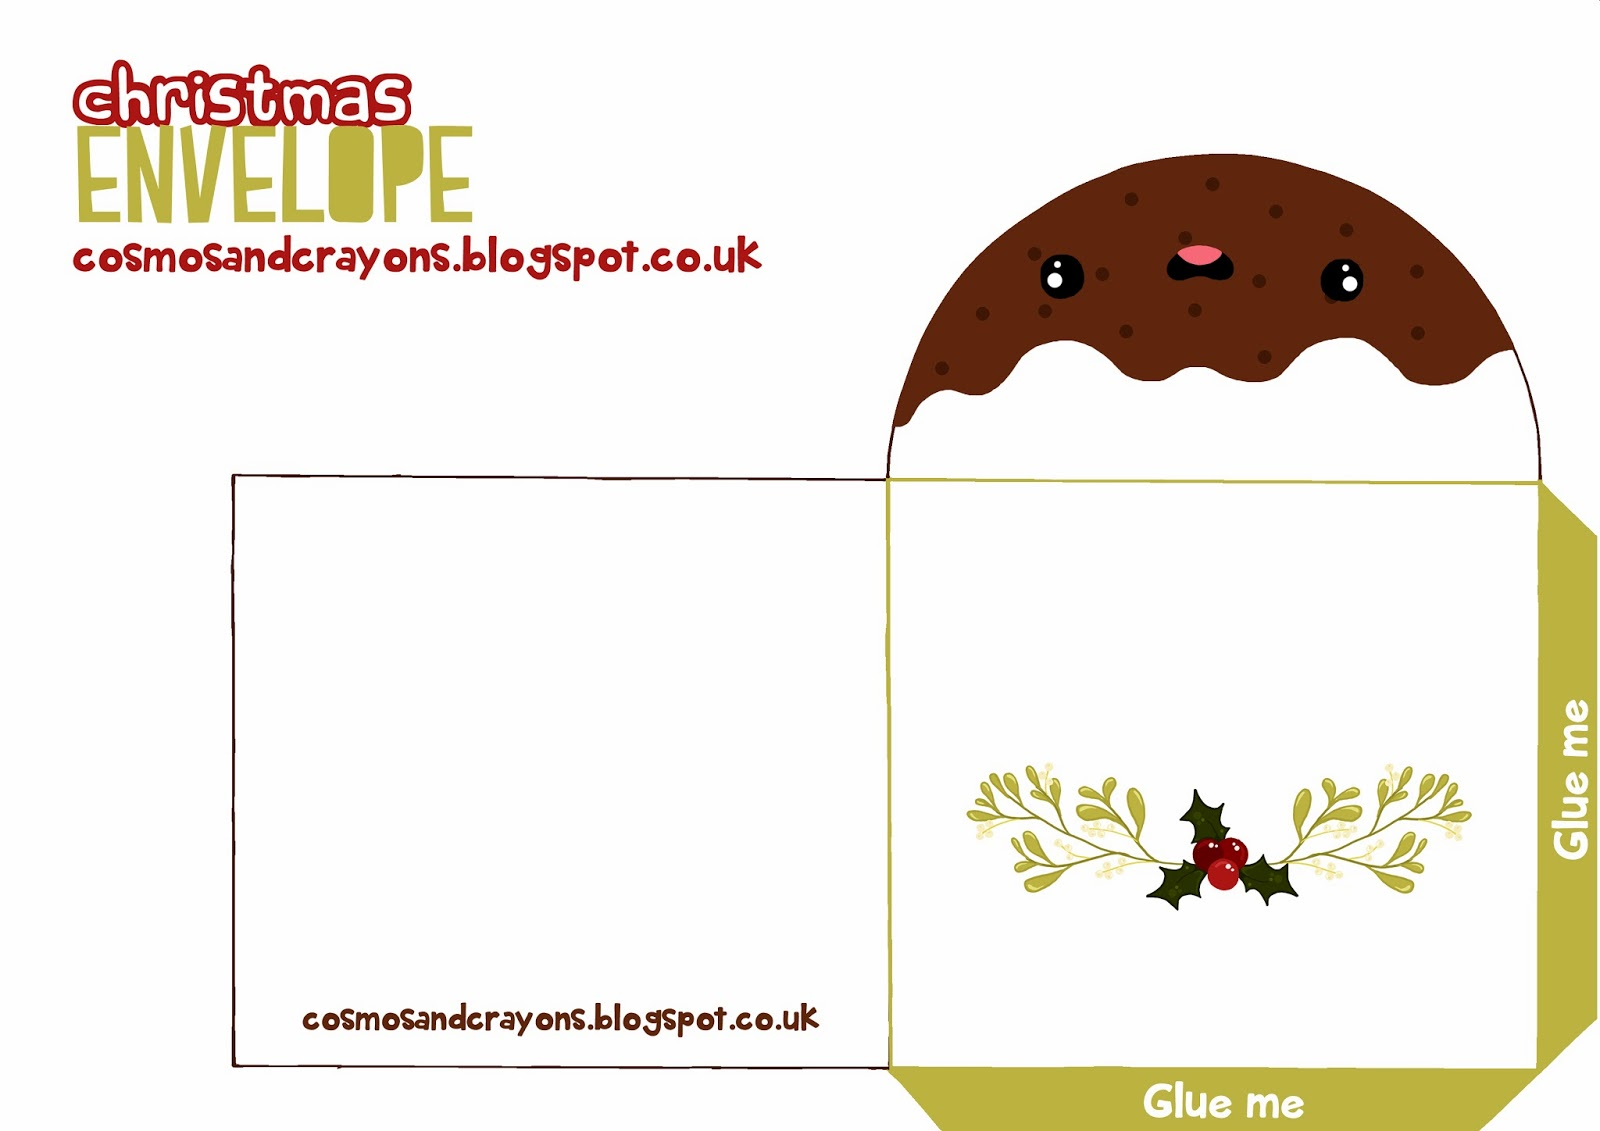 printout two envelopes full size a4 landscape - Christmas Card Print Out